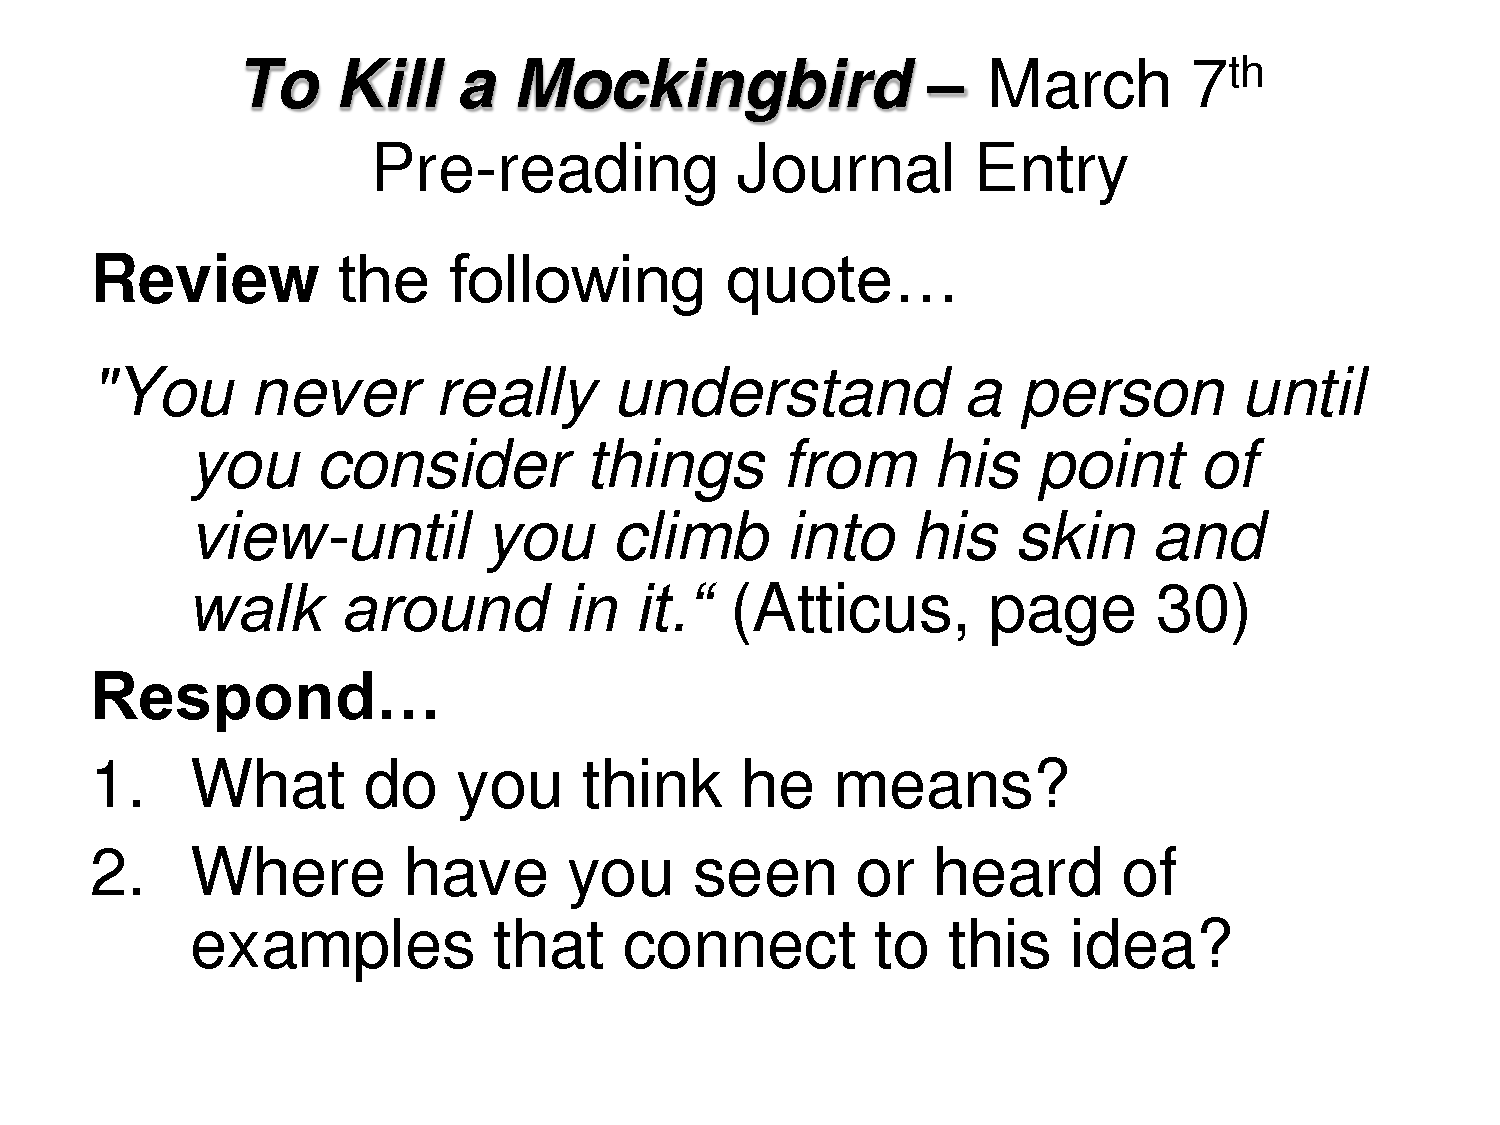 Harper Lee's To Kill a Mockingbird: Racism, Discrimination, Social class